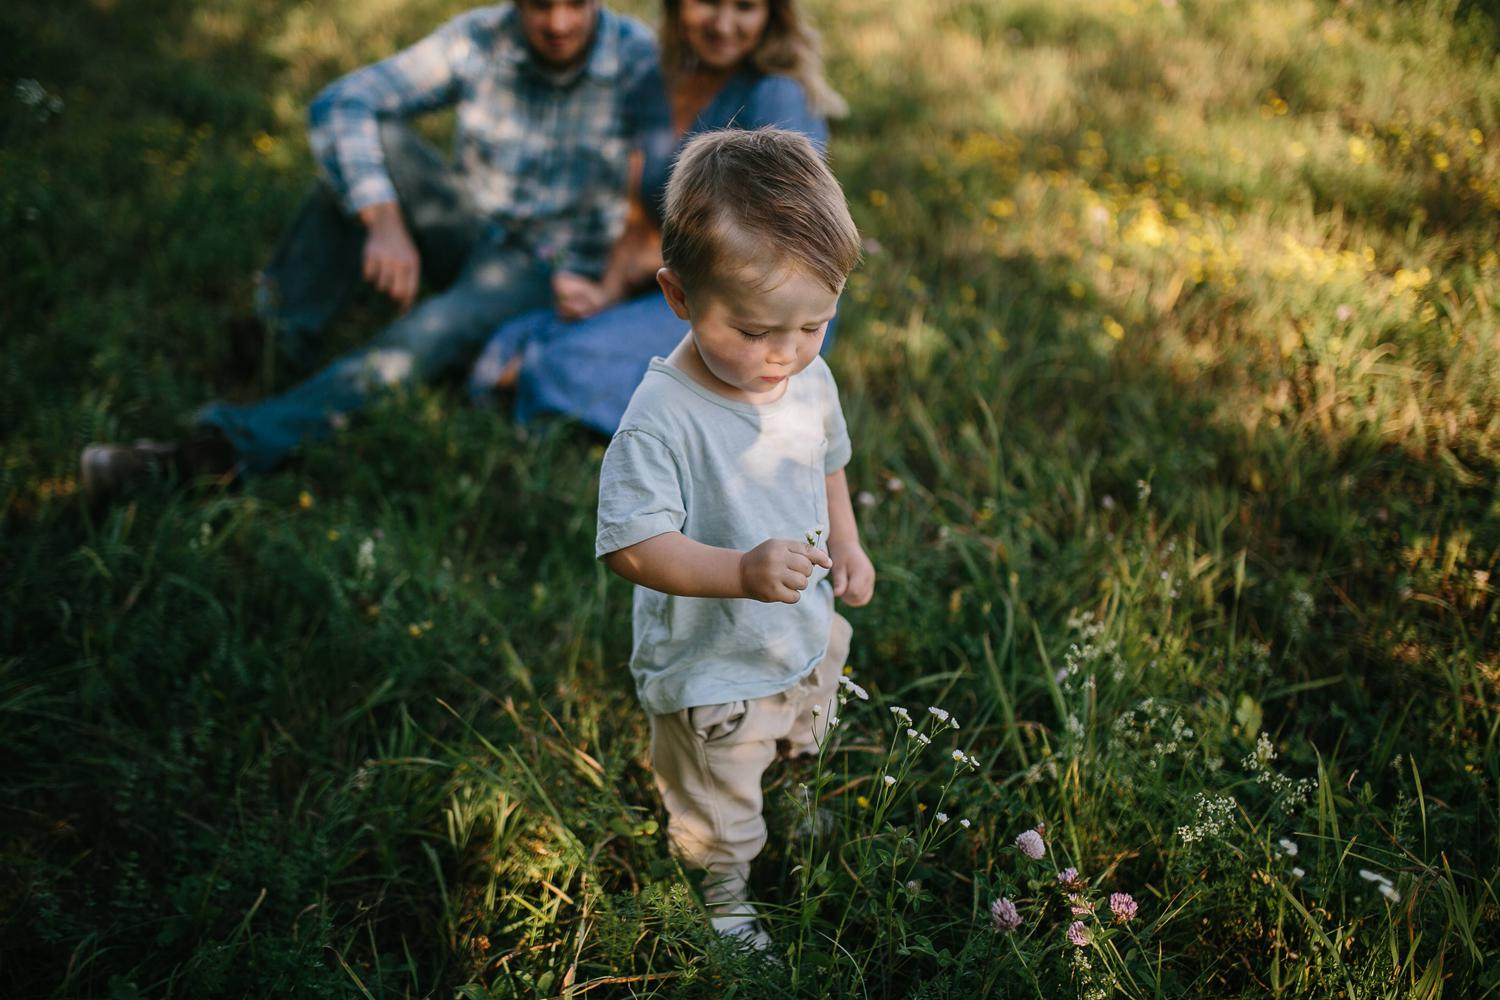 perth lanark county family outdoor photographer - kerry ford photography-033.jpg